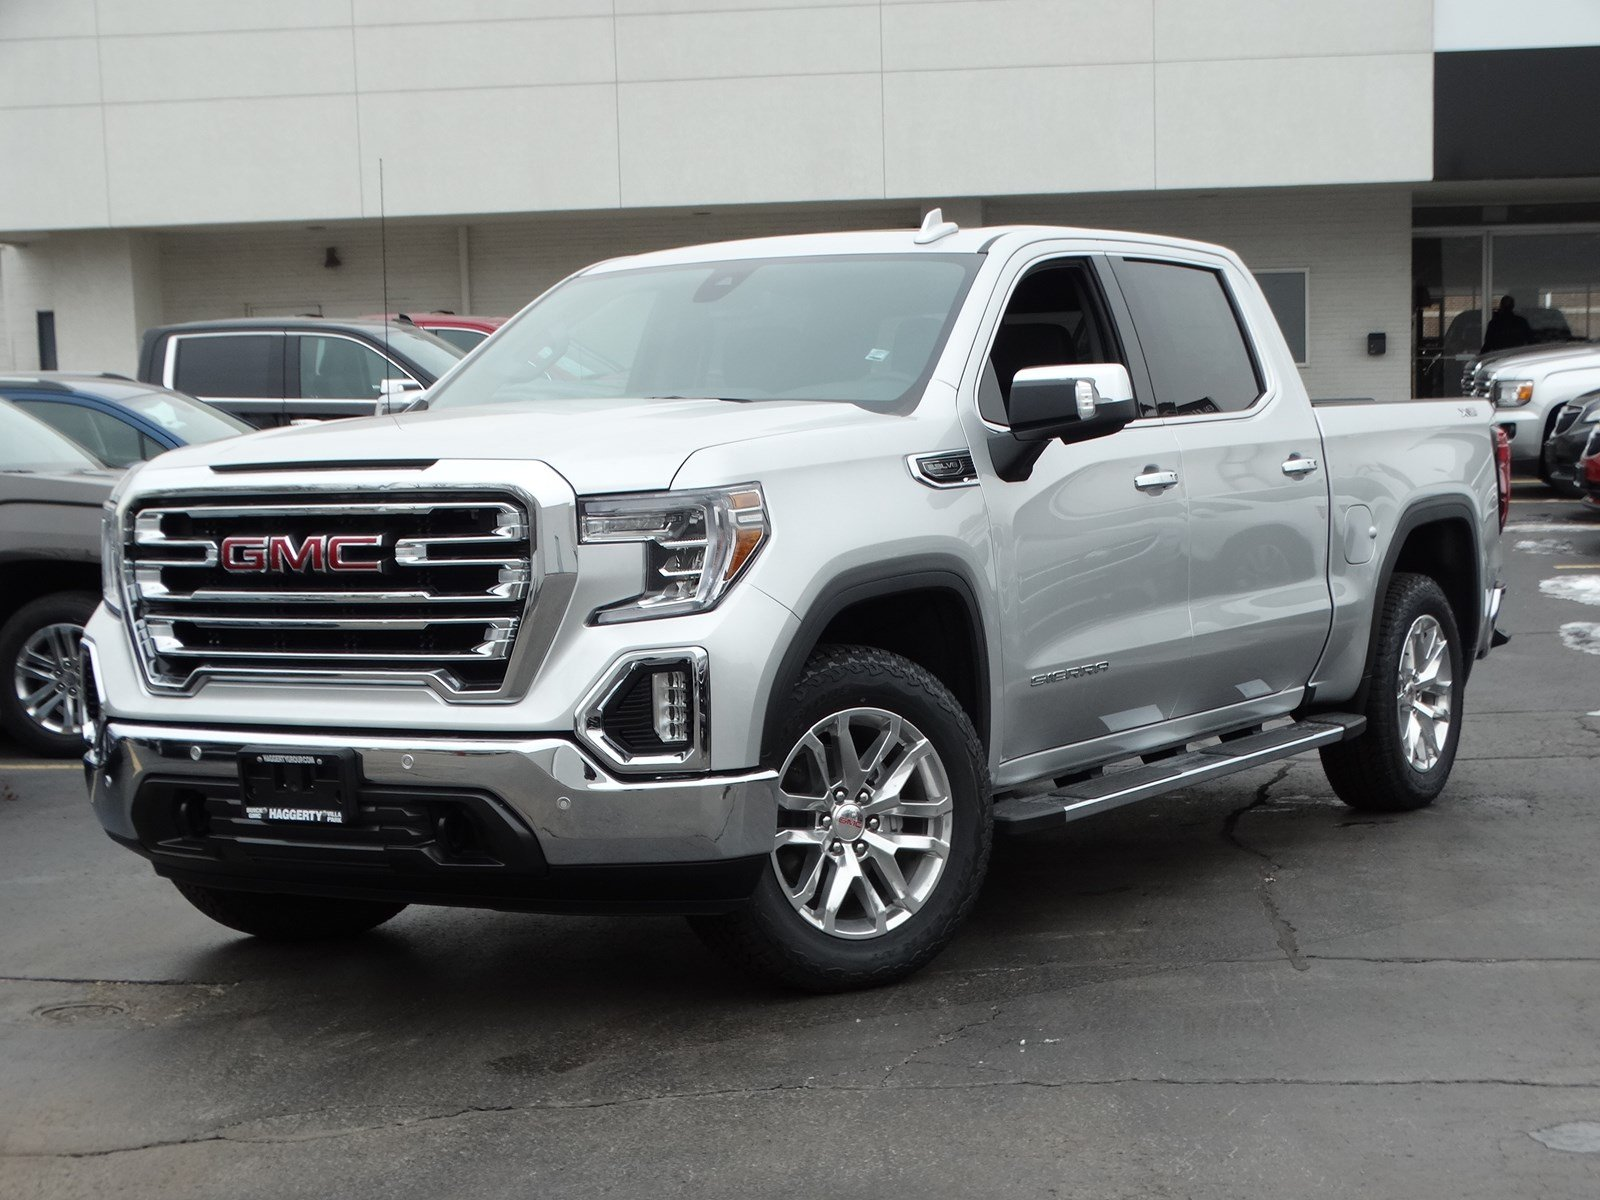 New 2019 GMC Sierra 1500 SLT Crew Cab Pickup in Villa Park ...